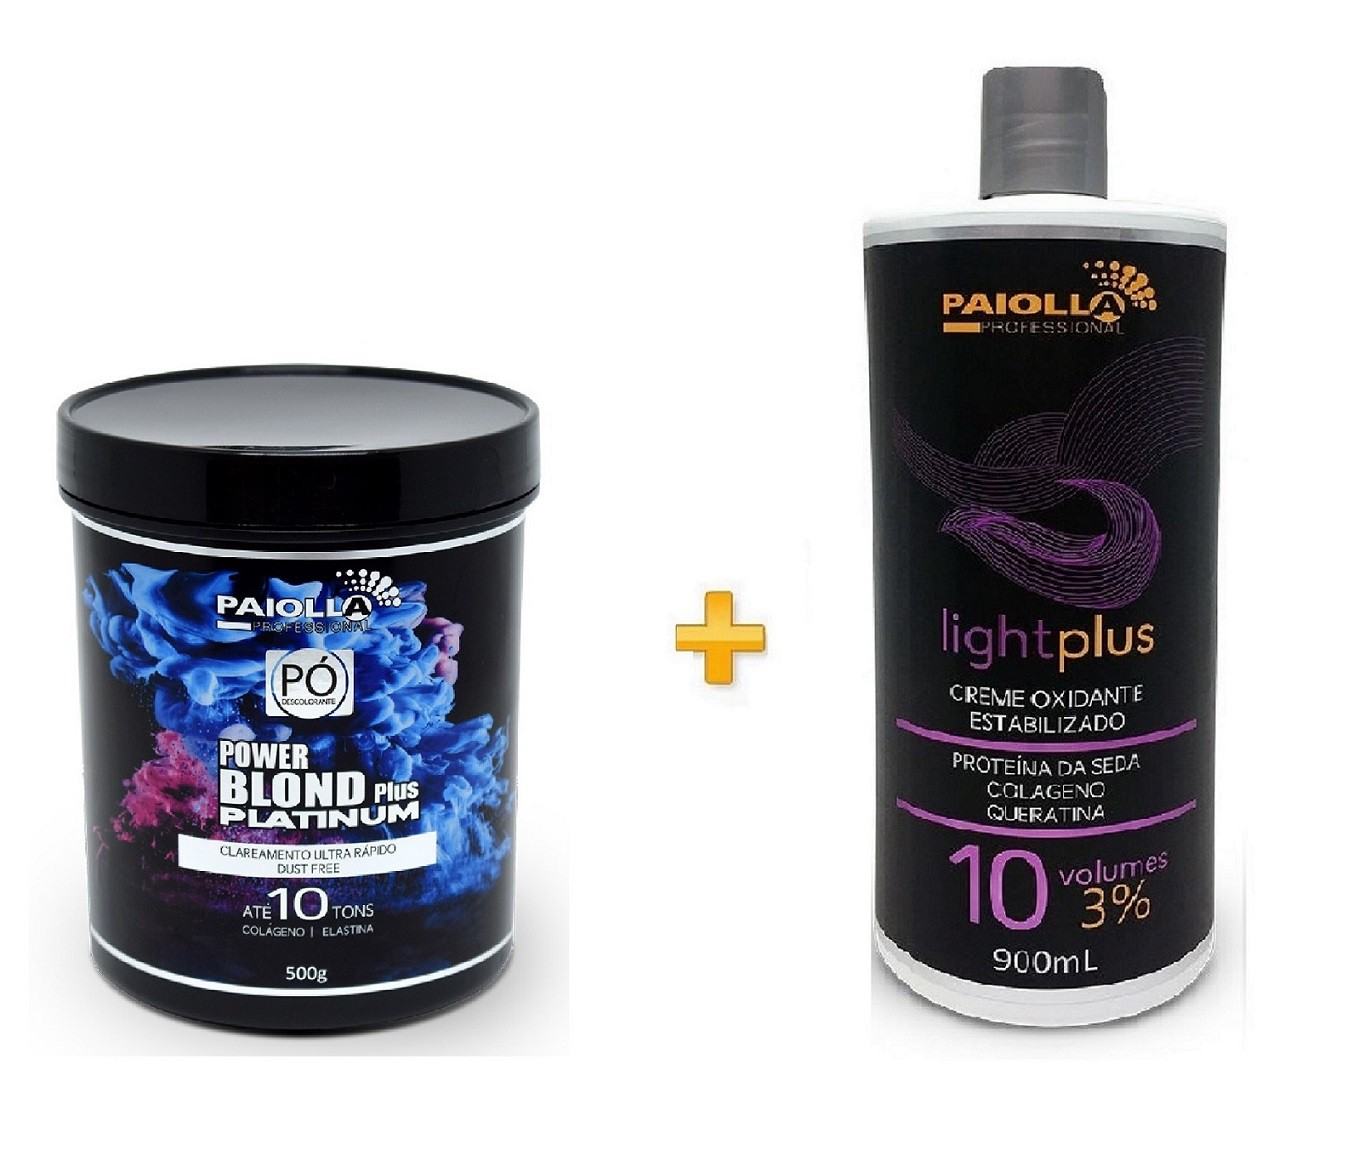 COMBO Pó Descolorante Power Blond Plus Platinum 500g + Creme Oxidante Estabilizado 10 volumes